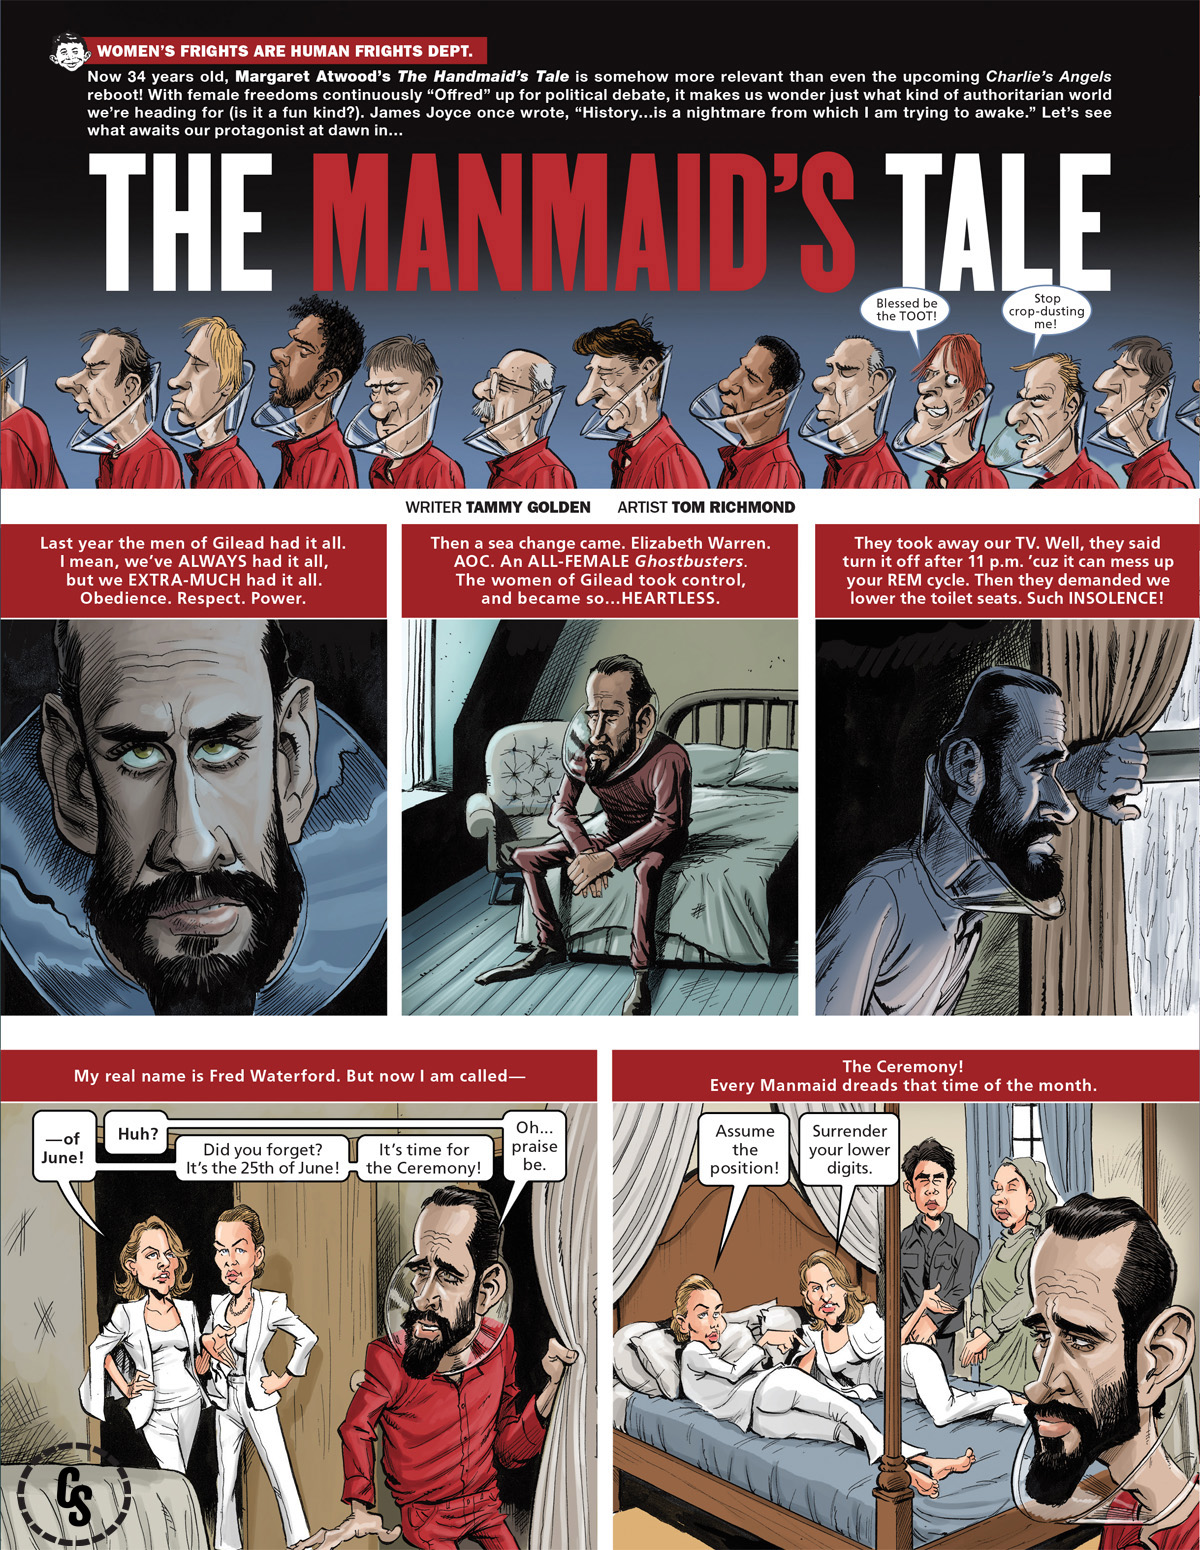 The Handmaid's Tale Parody from MAD #10